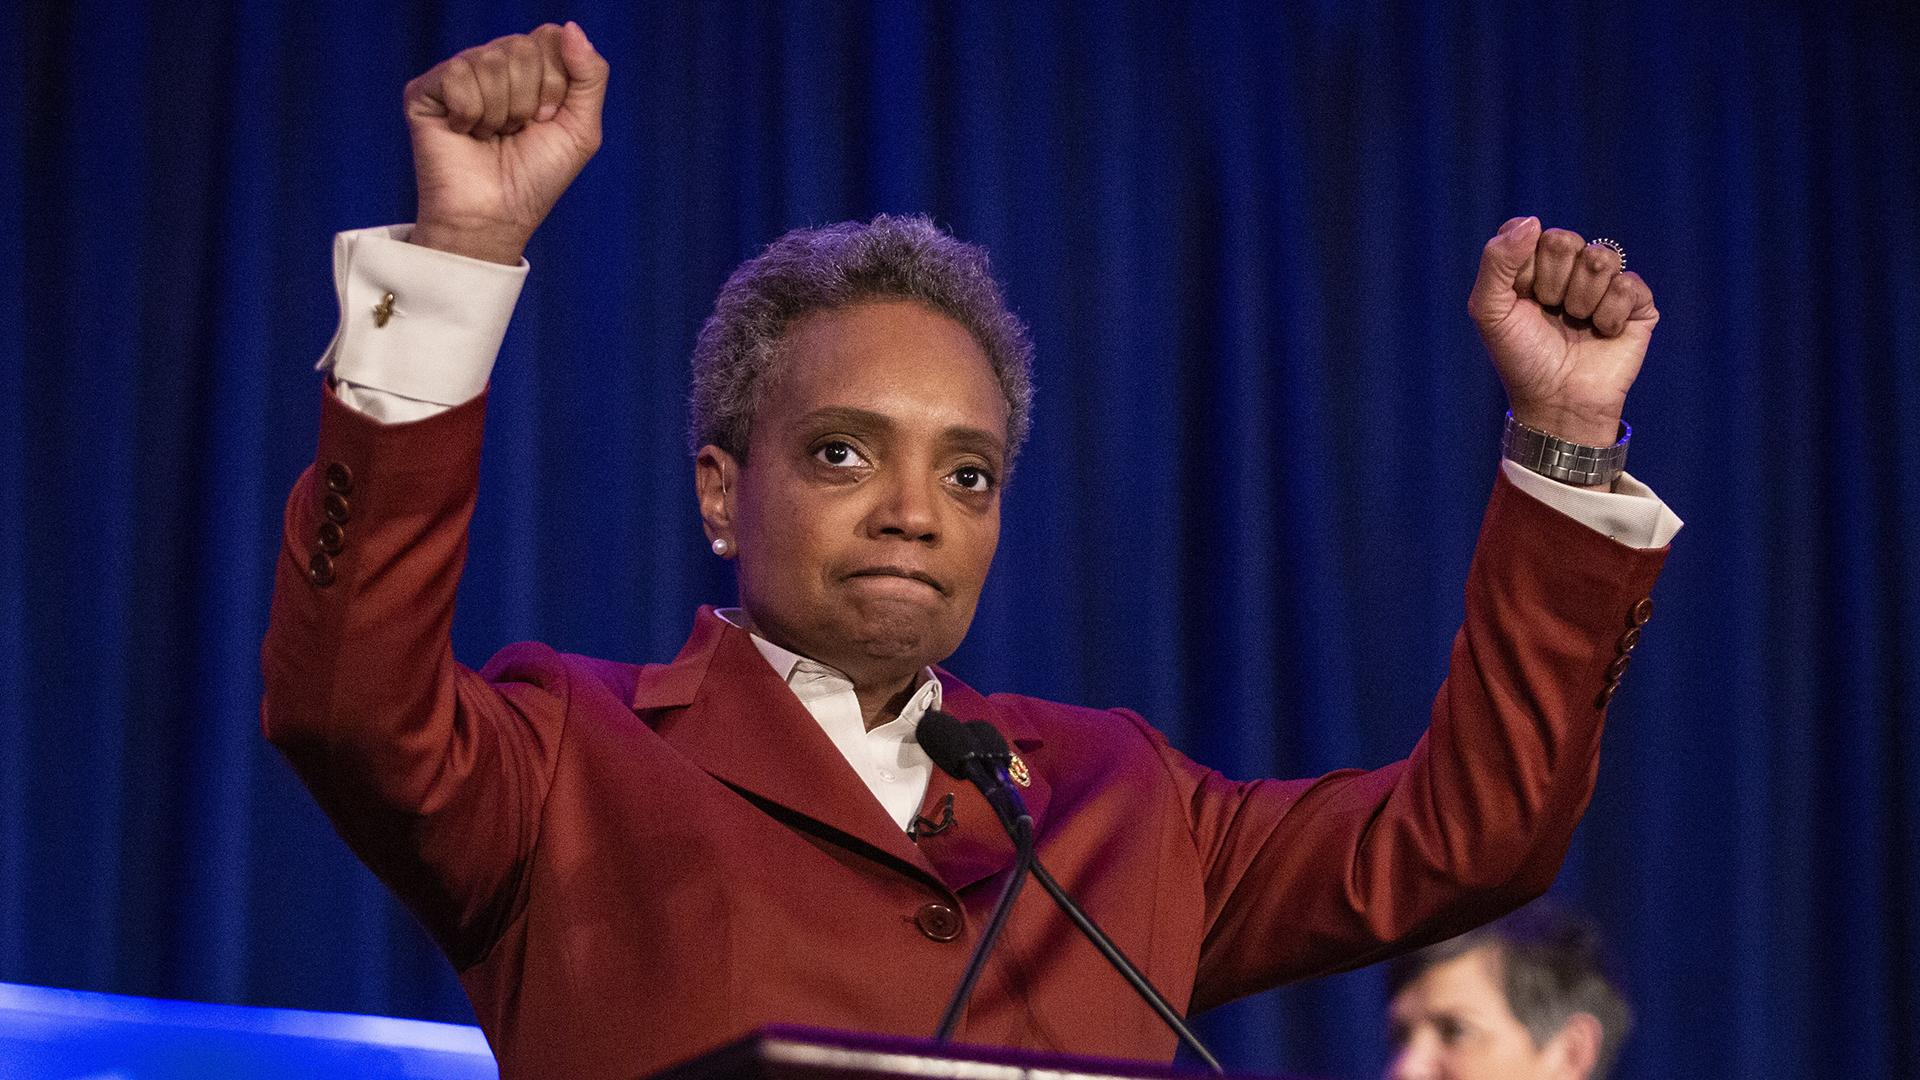 Lori Lightfoot celebrates at her election night rally at the Hilton Chicago after defeating Toni Preckwinkle in the Chicago mayoral election, Tuesday, April 2, 2019. (Ashlee Rezin / Chicago Sun-Times via AP)